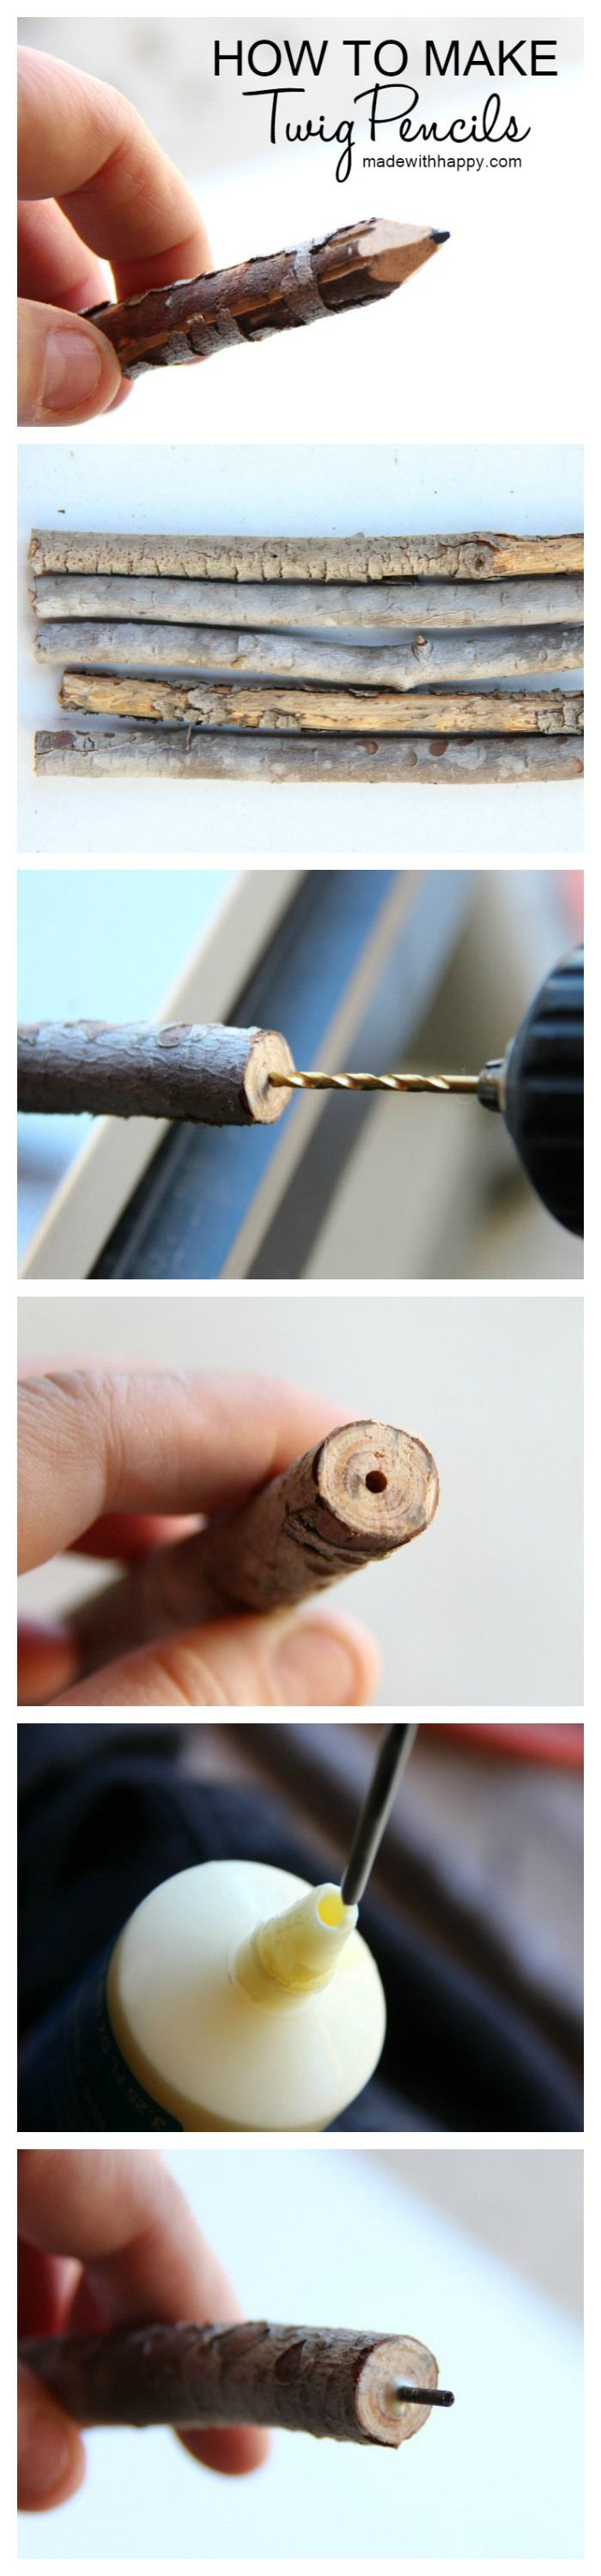 How to Make Twig Pencils - Branch Pencils DIY  http://www.madewithhappy.com/make-twig-pencils/